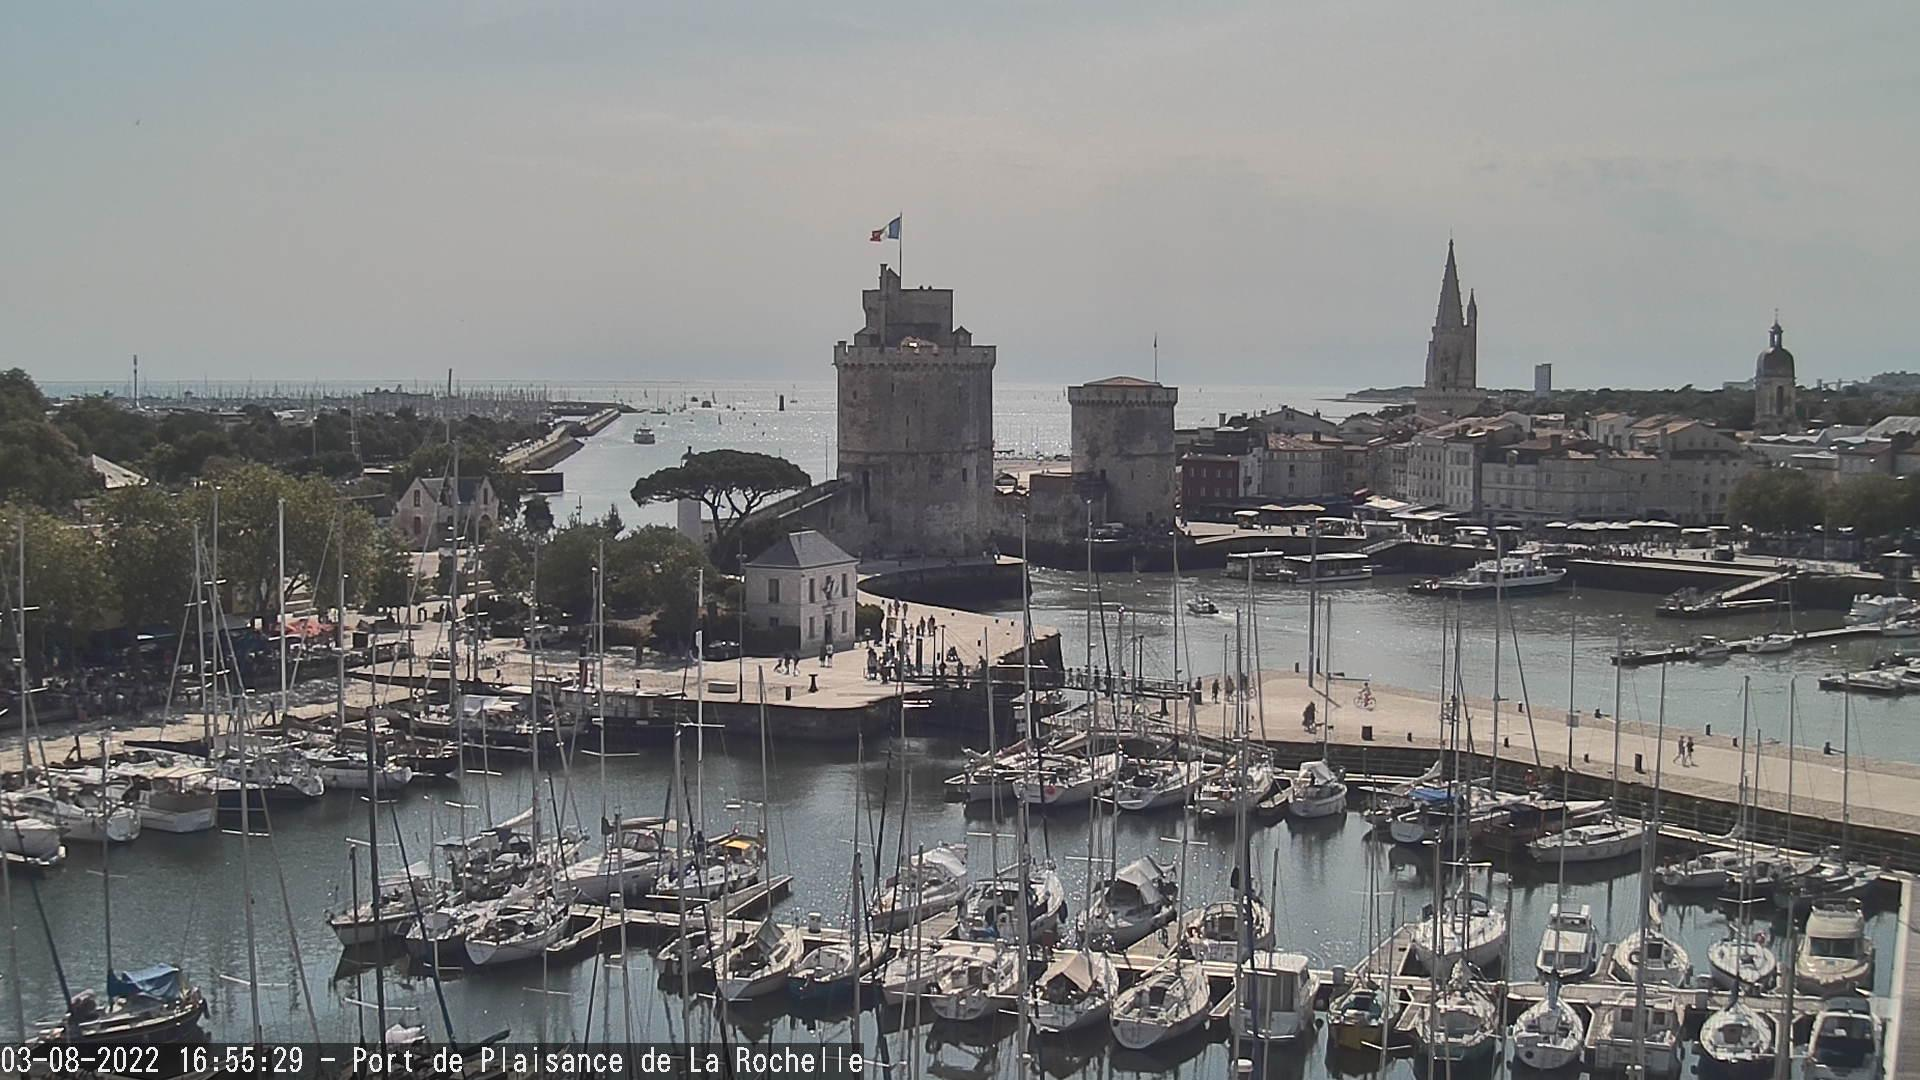 port de plaisance webcam